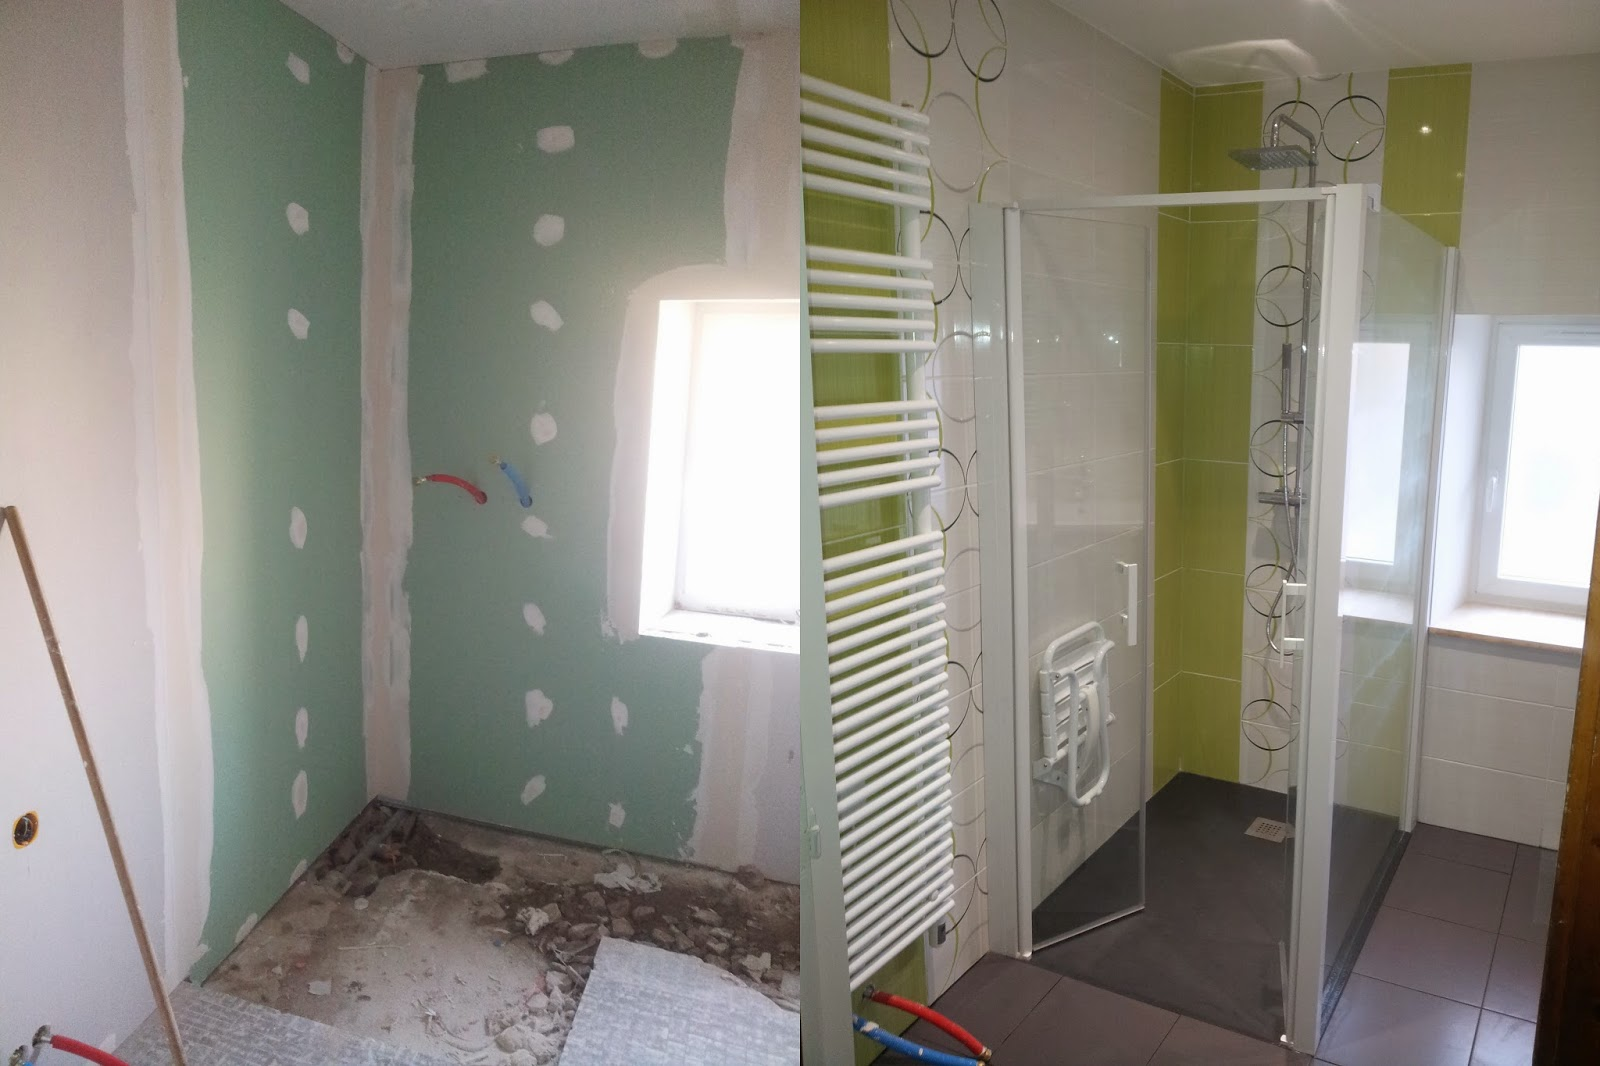 Michel le coz agencement d coration avant apr s salle for Salle de bain verte et blanche